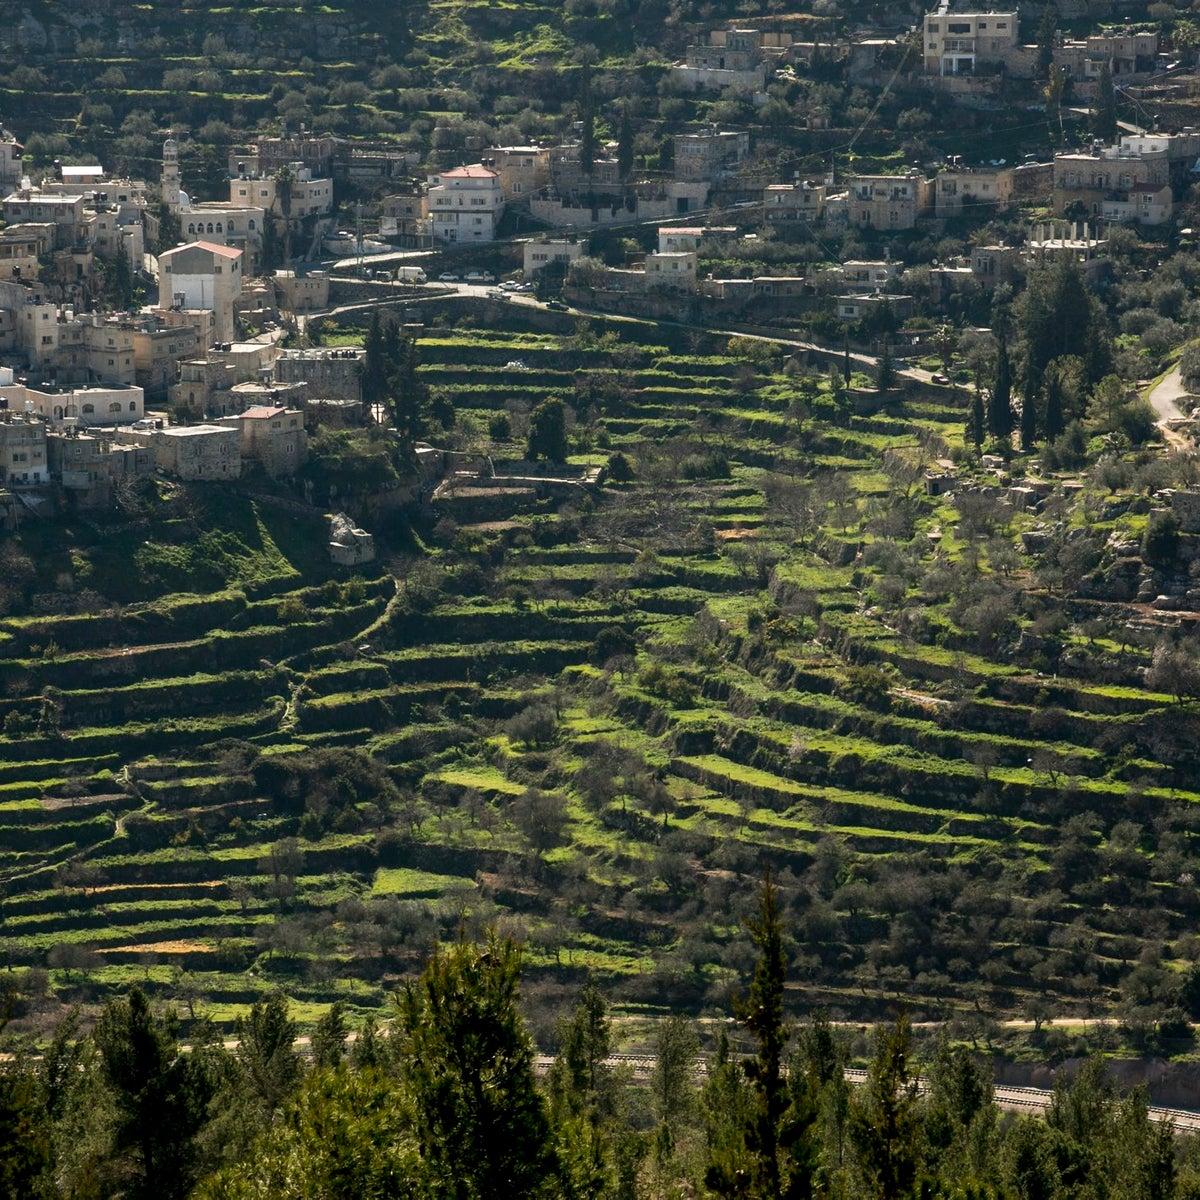 A aerial view of the world-famous, green terrace at Battir.